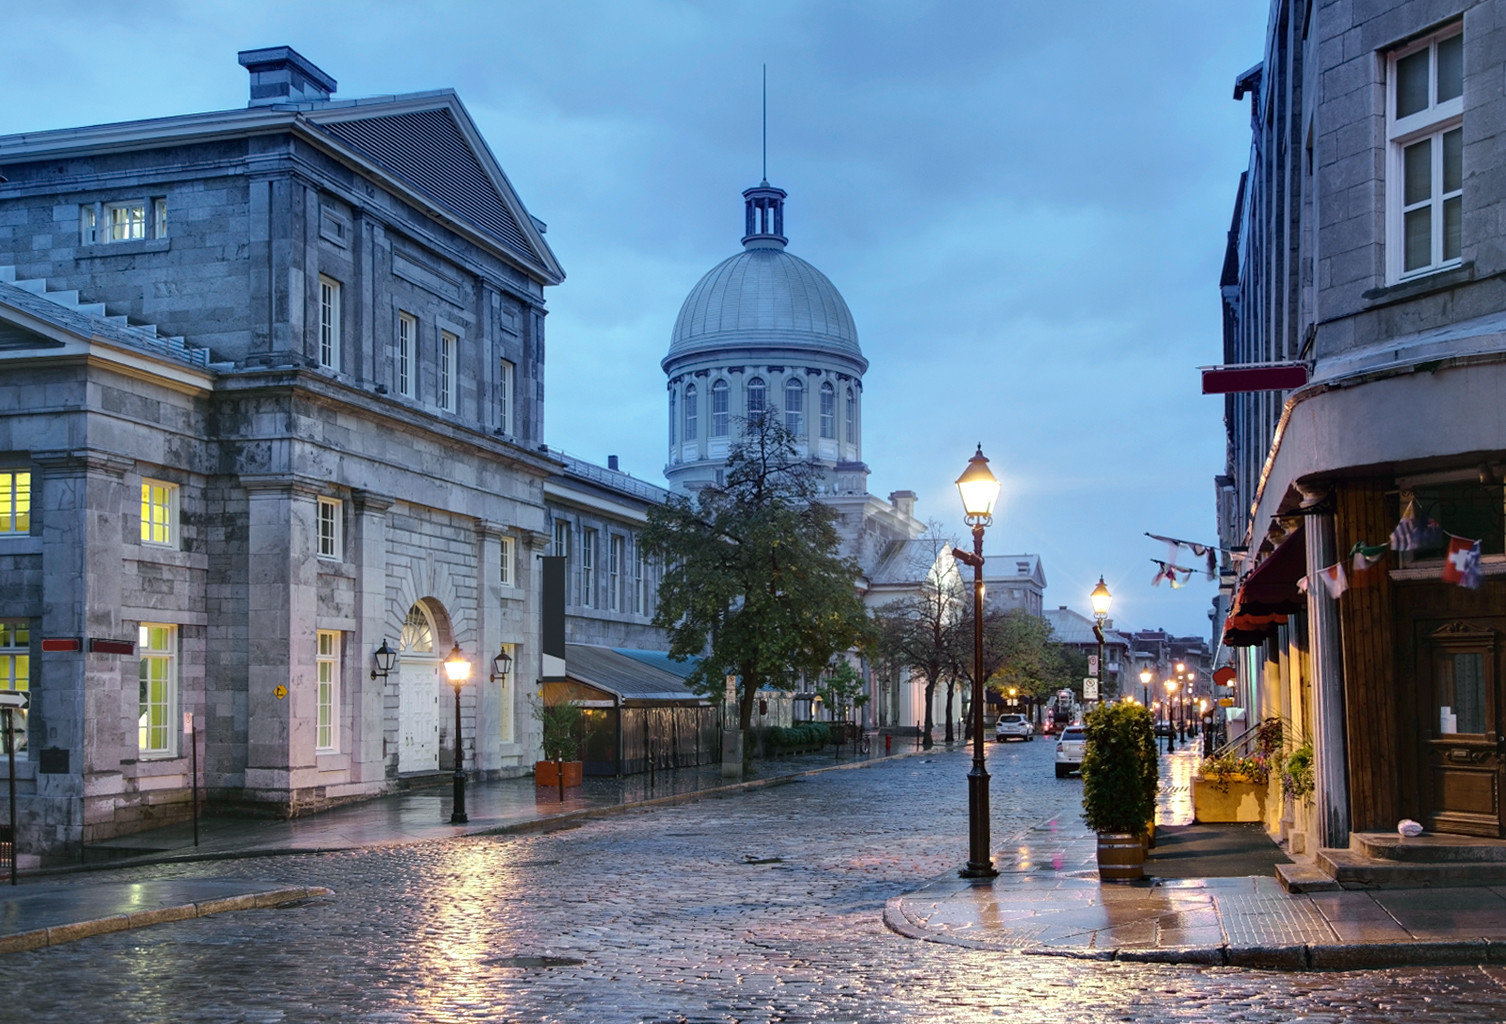 Architecture Buildings City Historic Landmarks Town building road cityscape landmark street neighbourhood Downtown evening waterway infrastructure town square rainy